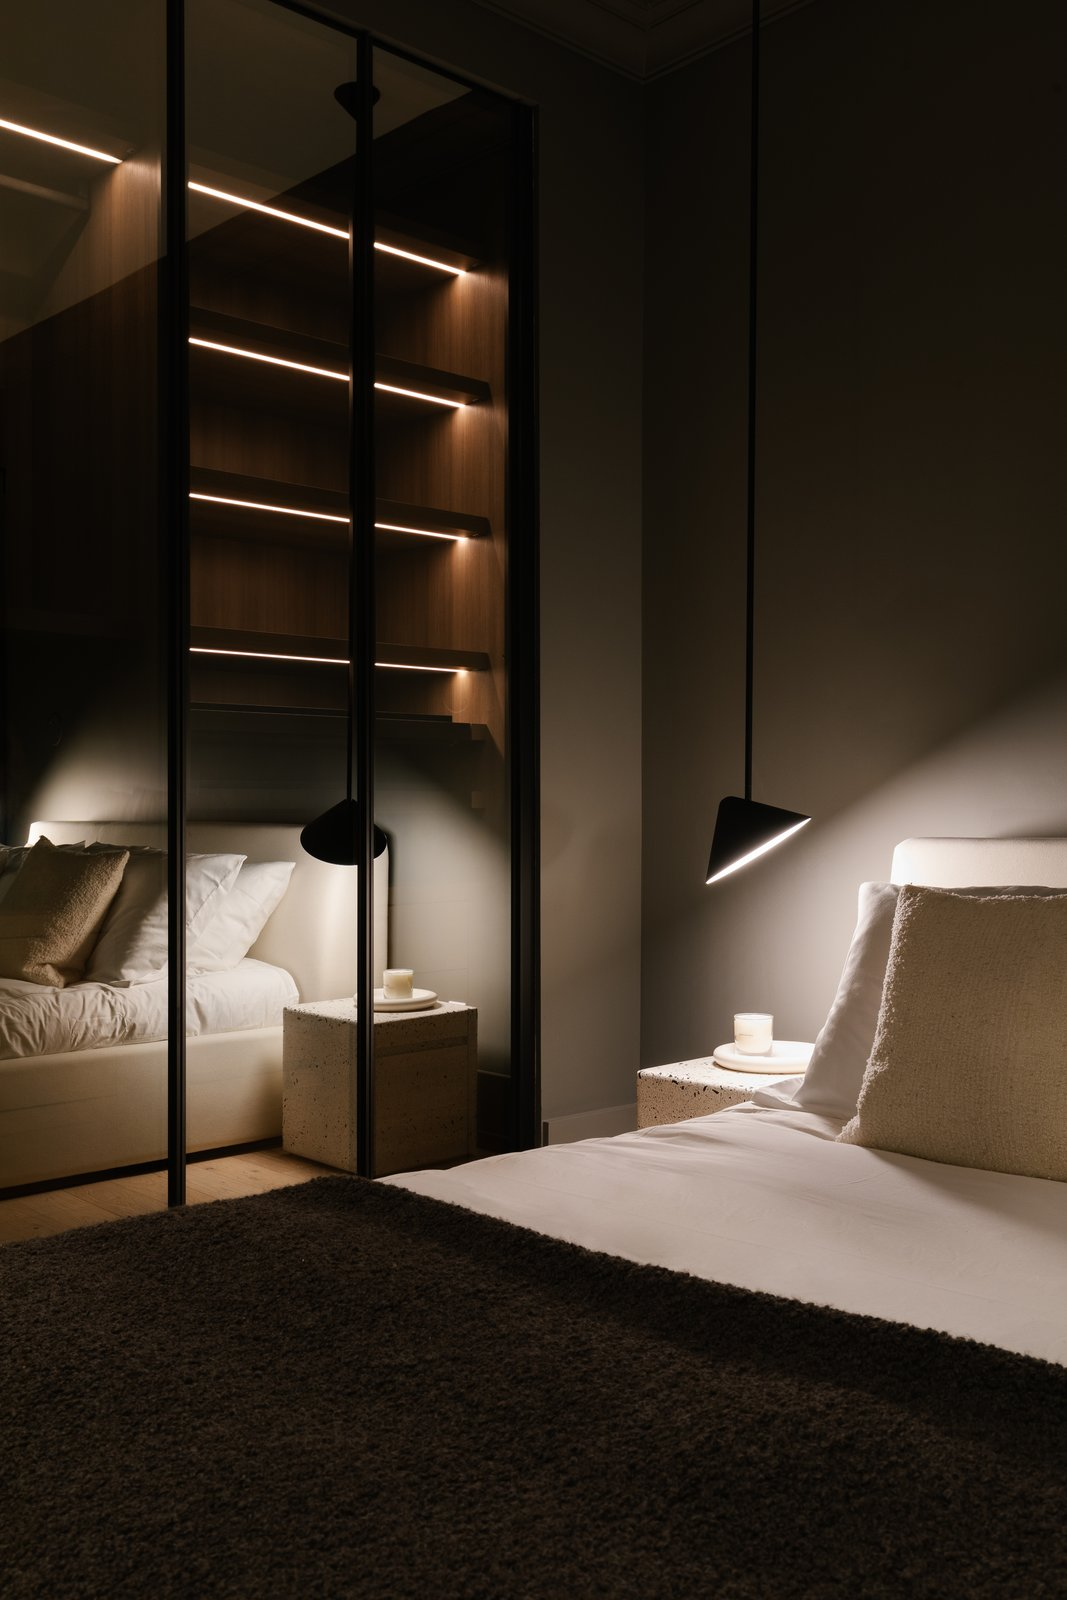 Bedroom, Recessed Lighting, Shelves, Bed, Lamps, Pendant Lighting, Night Stands, Light Hardwood Floor, Accent Lighting, and Storage  The Adelaide Project